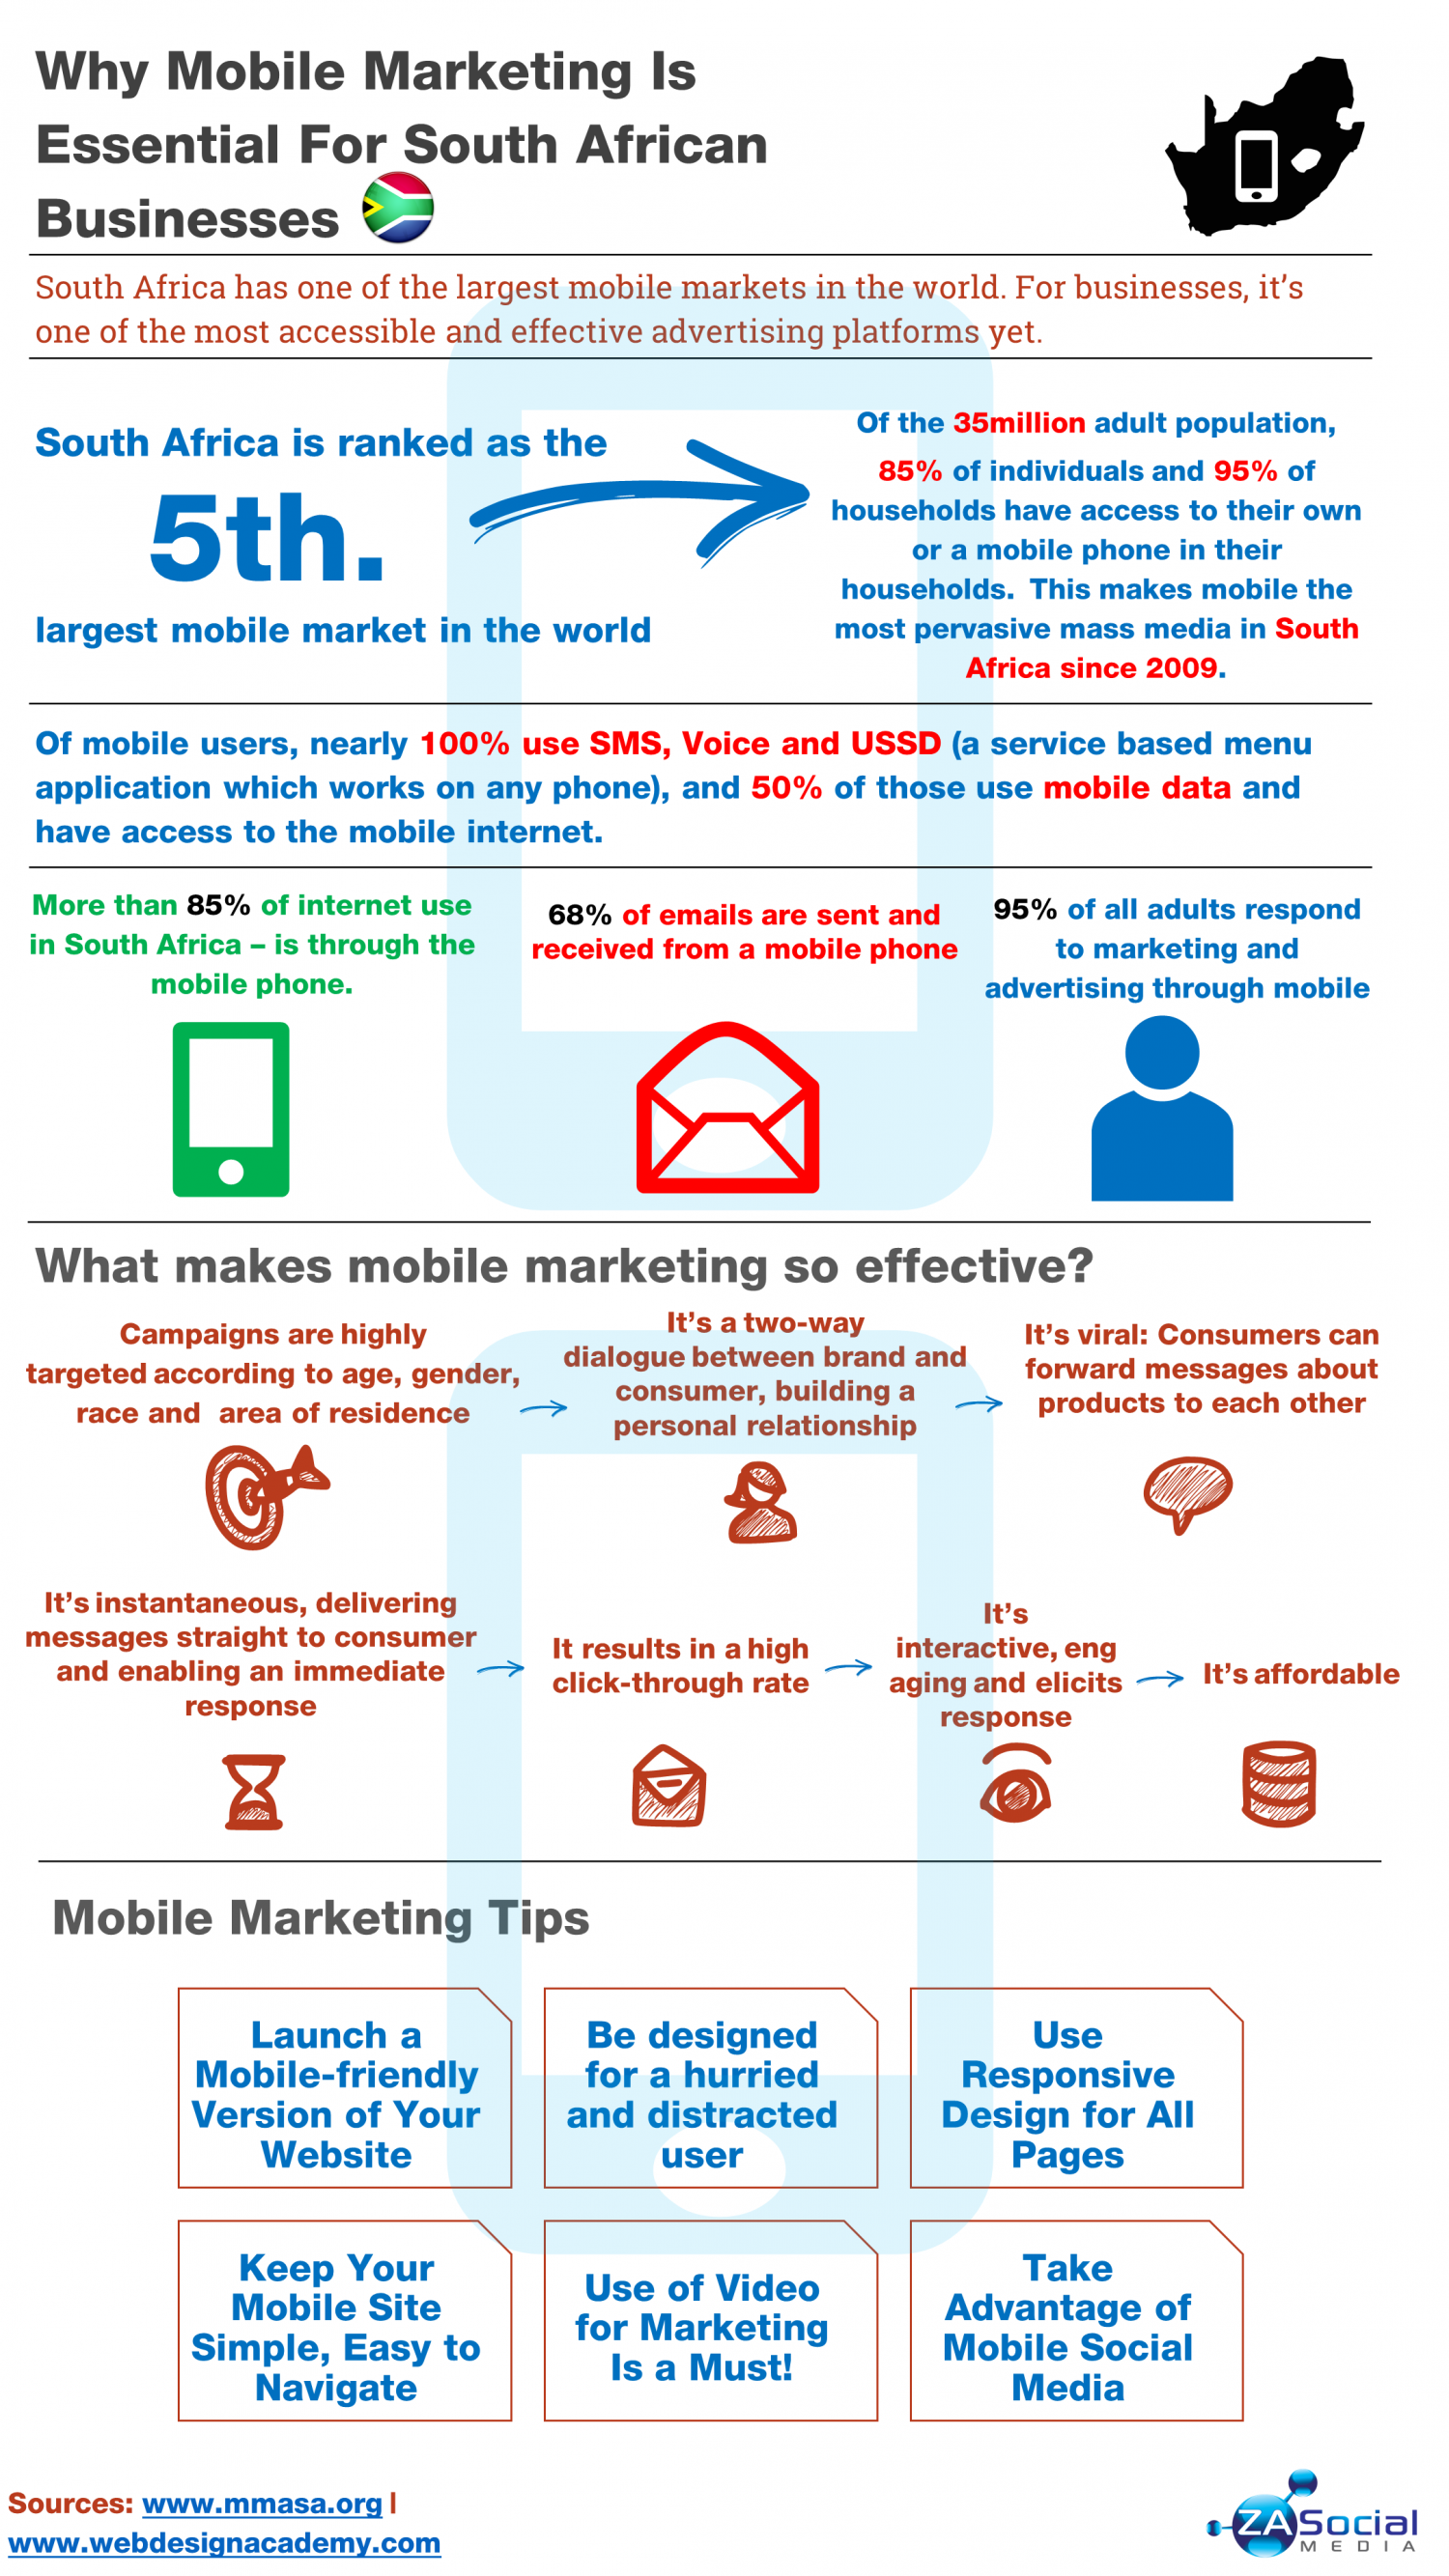 Why Mobile Marketing Is Essential For South African Businesses  Infographic